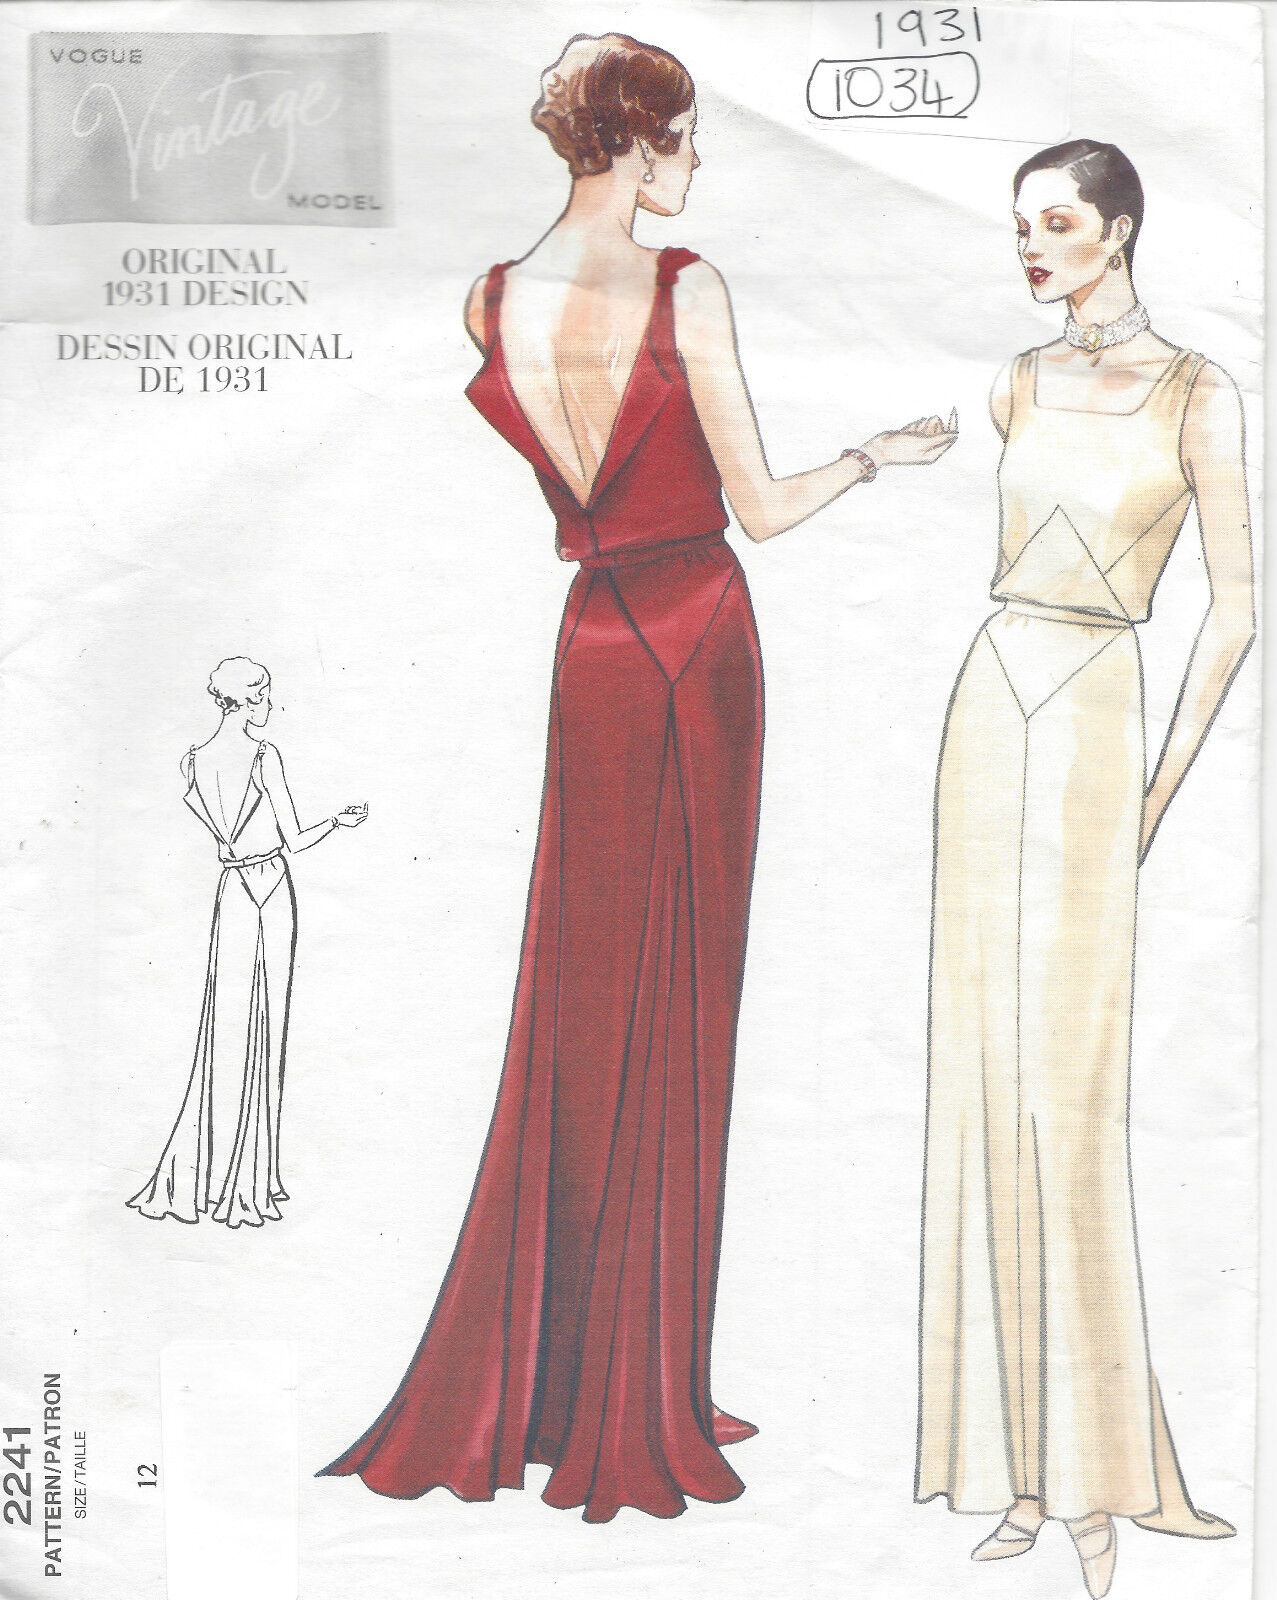 Vogue 2241 sewing pattern retro 1930s evening gown bridal dress 12 1931 vintage vogue sewing pattern b34 dress 1035 jeuxipadfo Choice Image